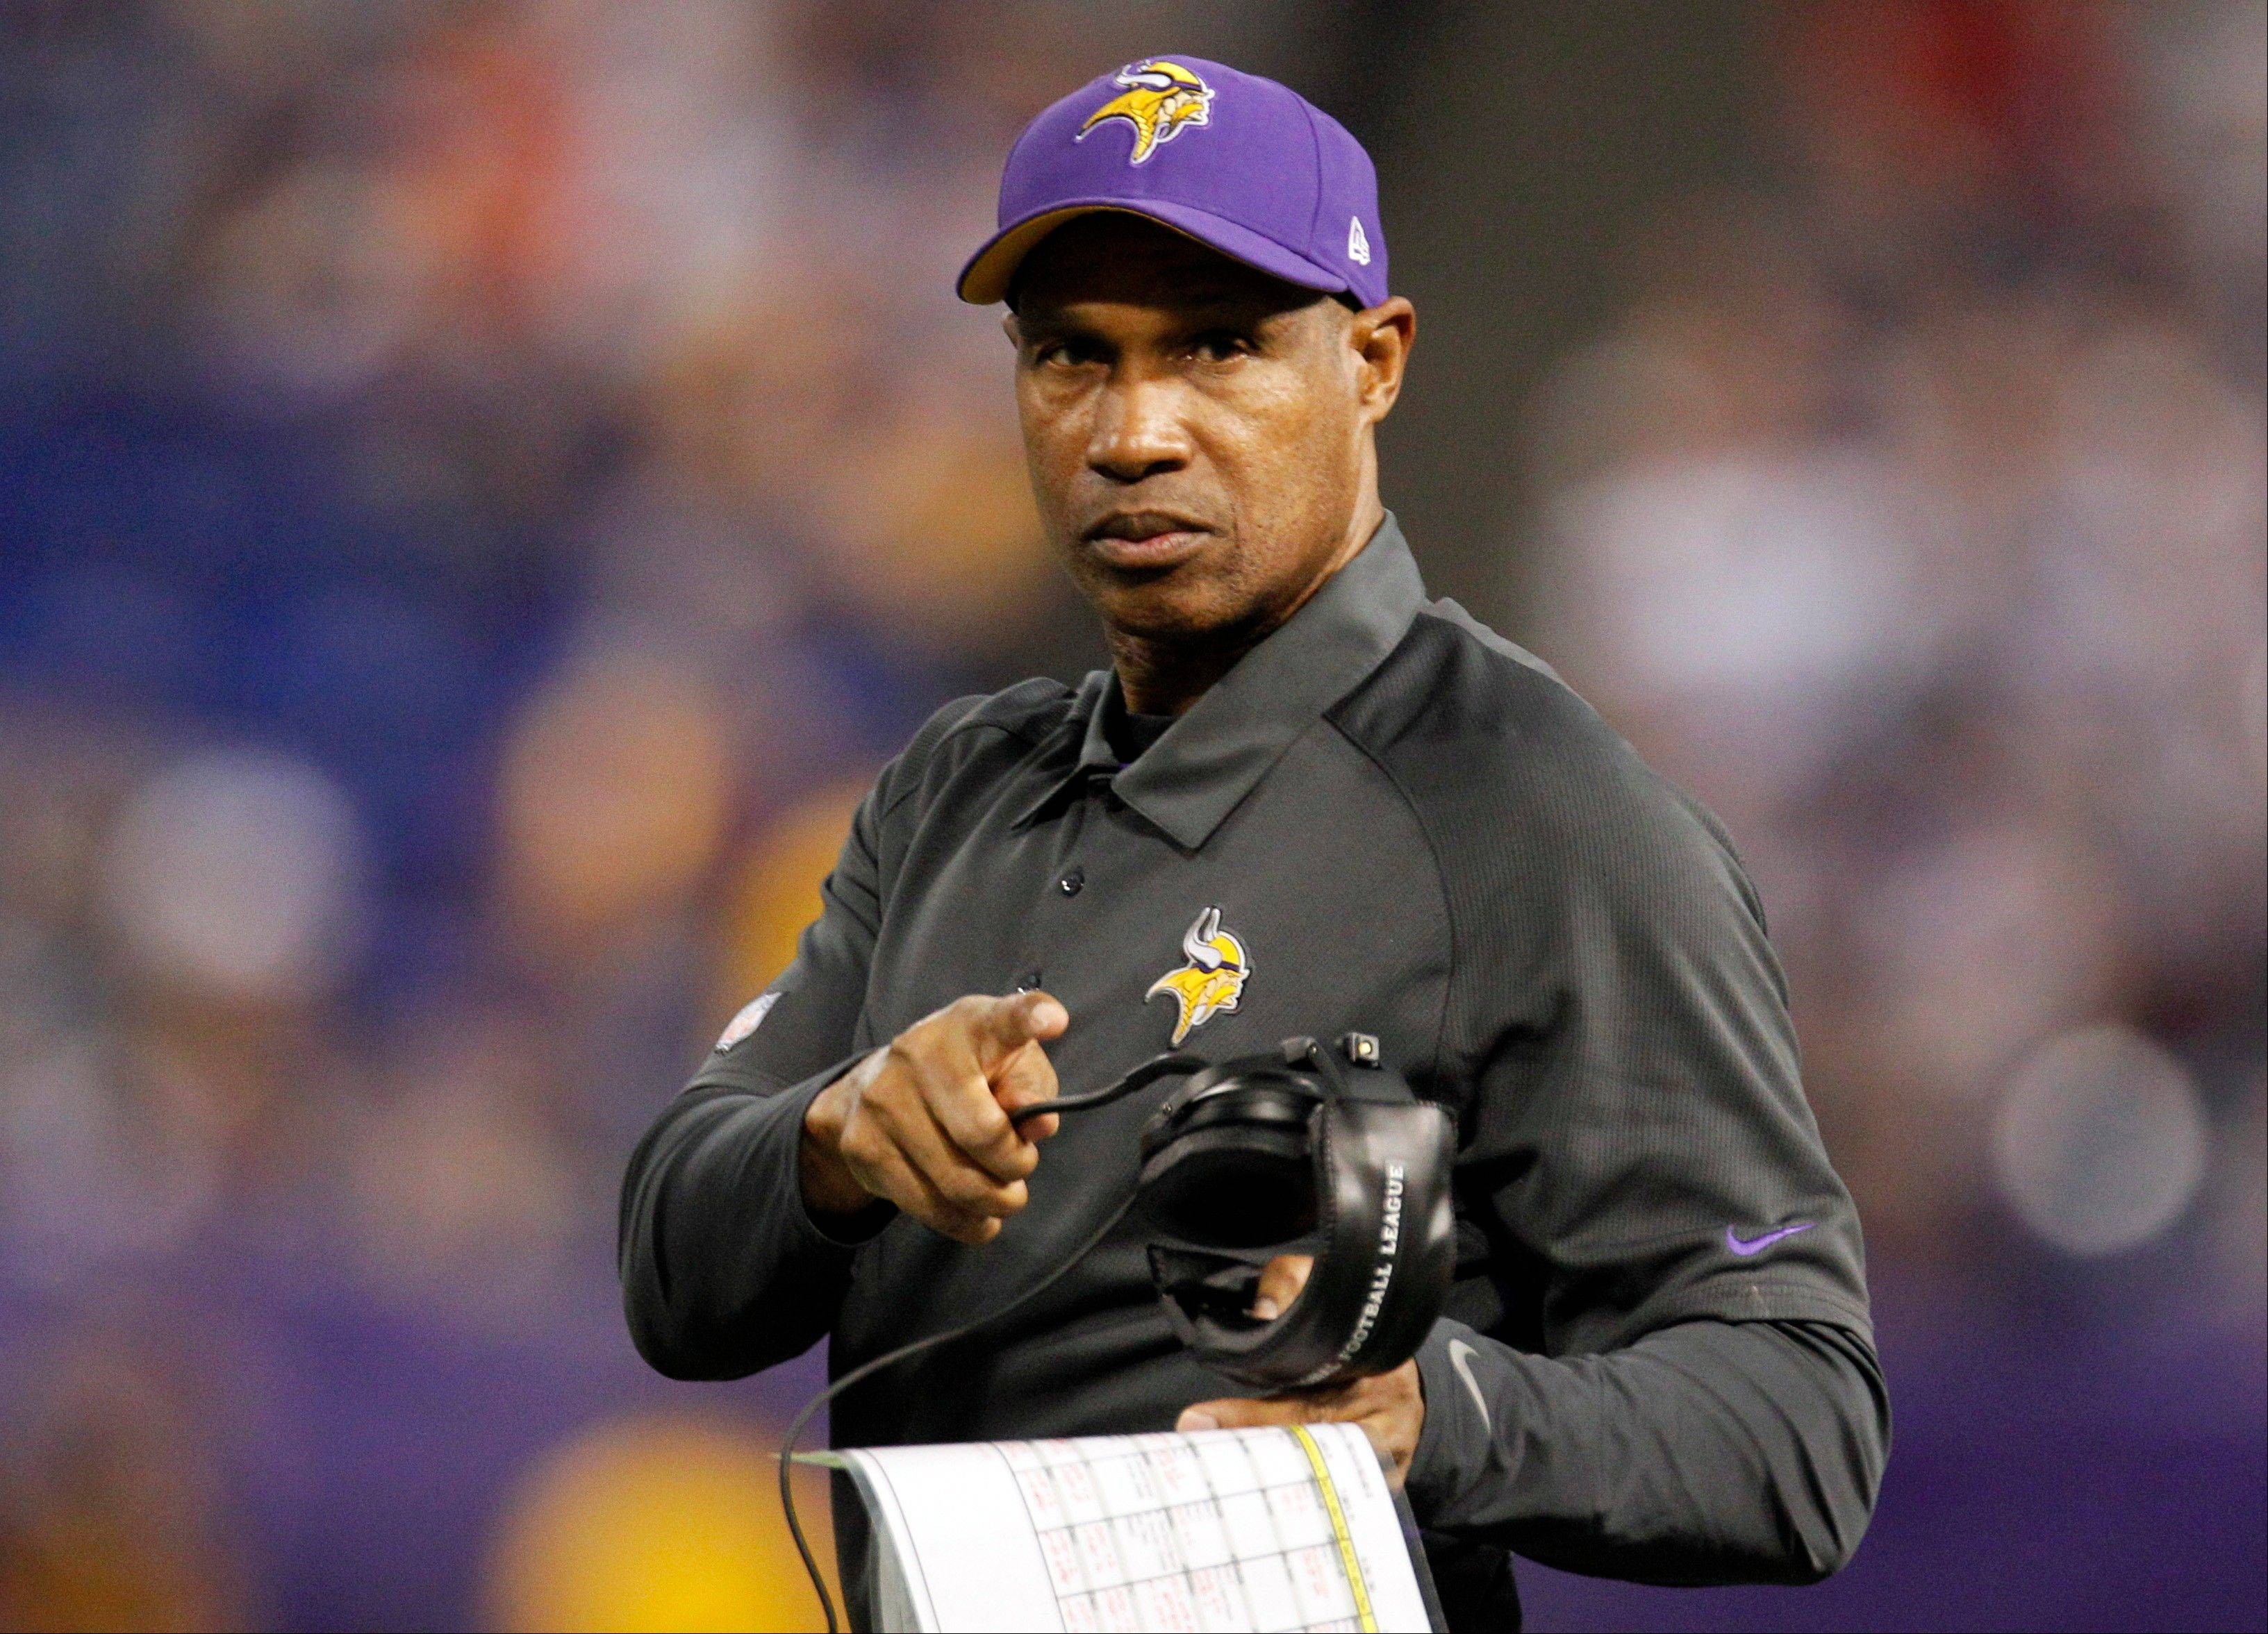 Minnesota Vikings head coach Leslie Frazier looks on during the second half. The Vikings won 21-14.